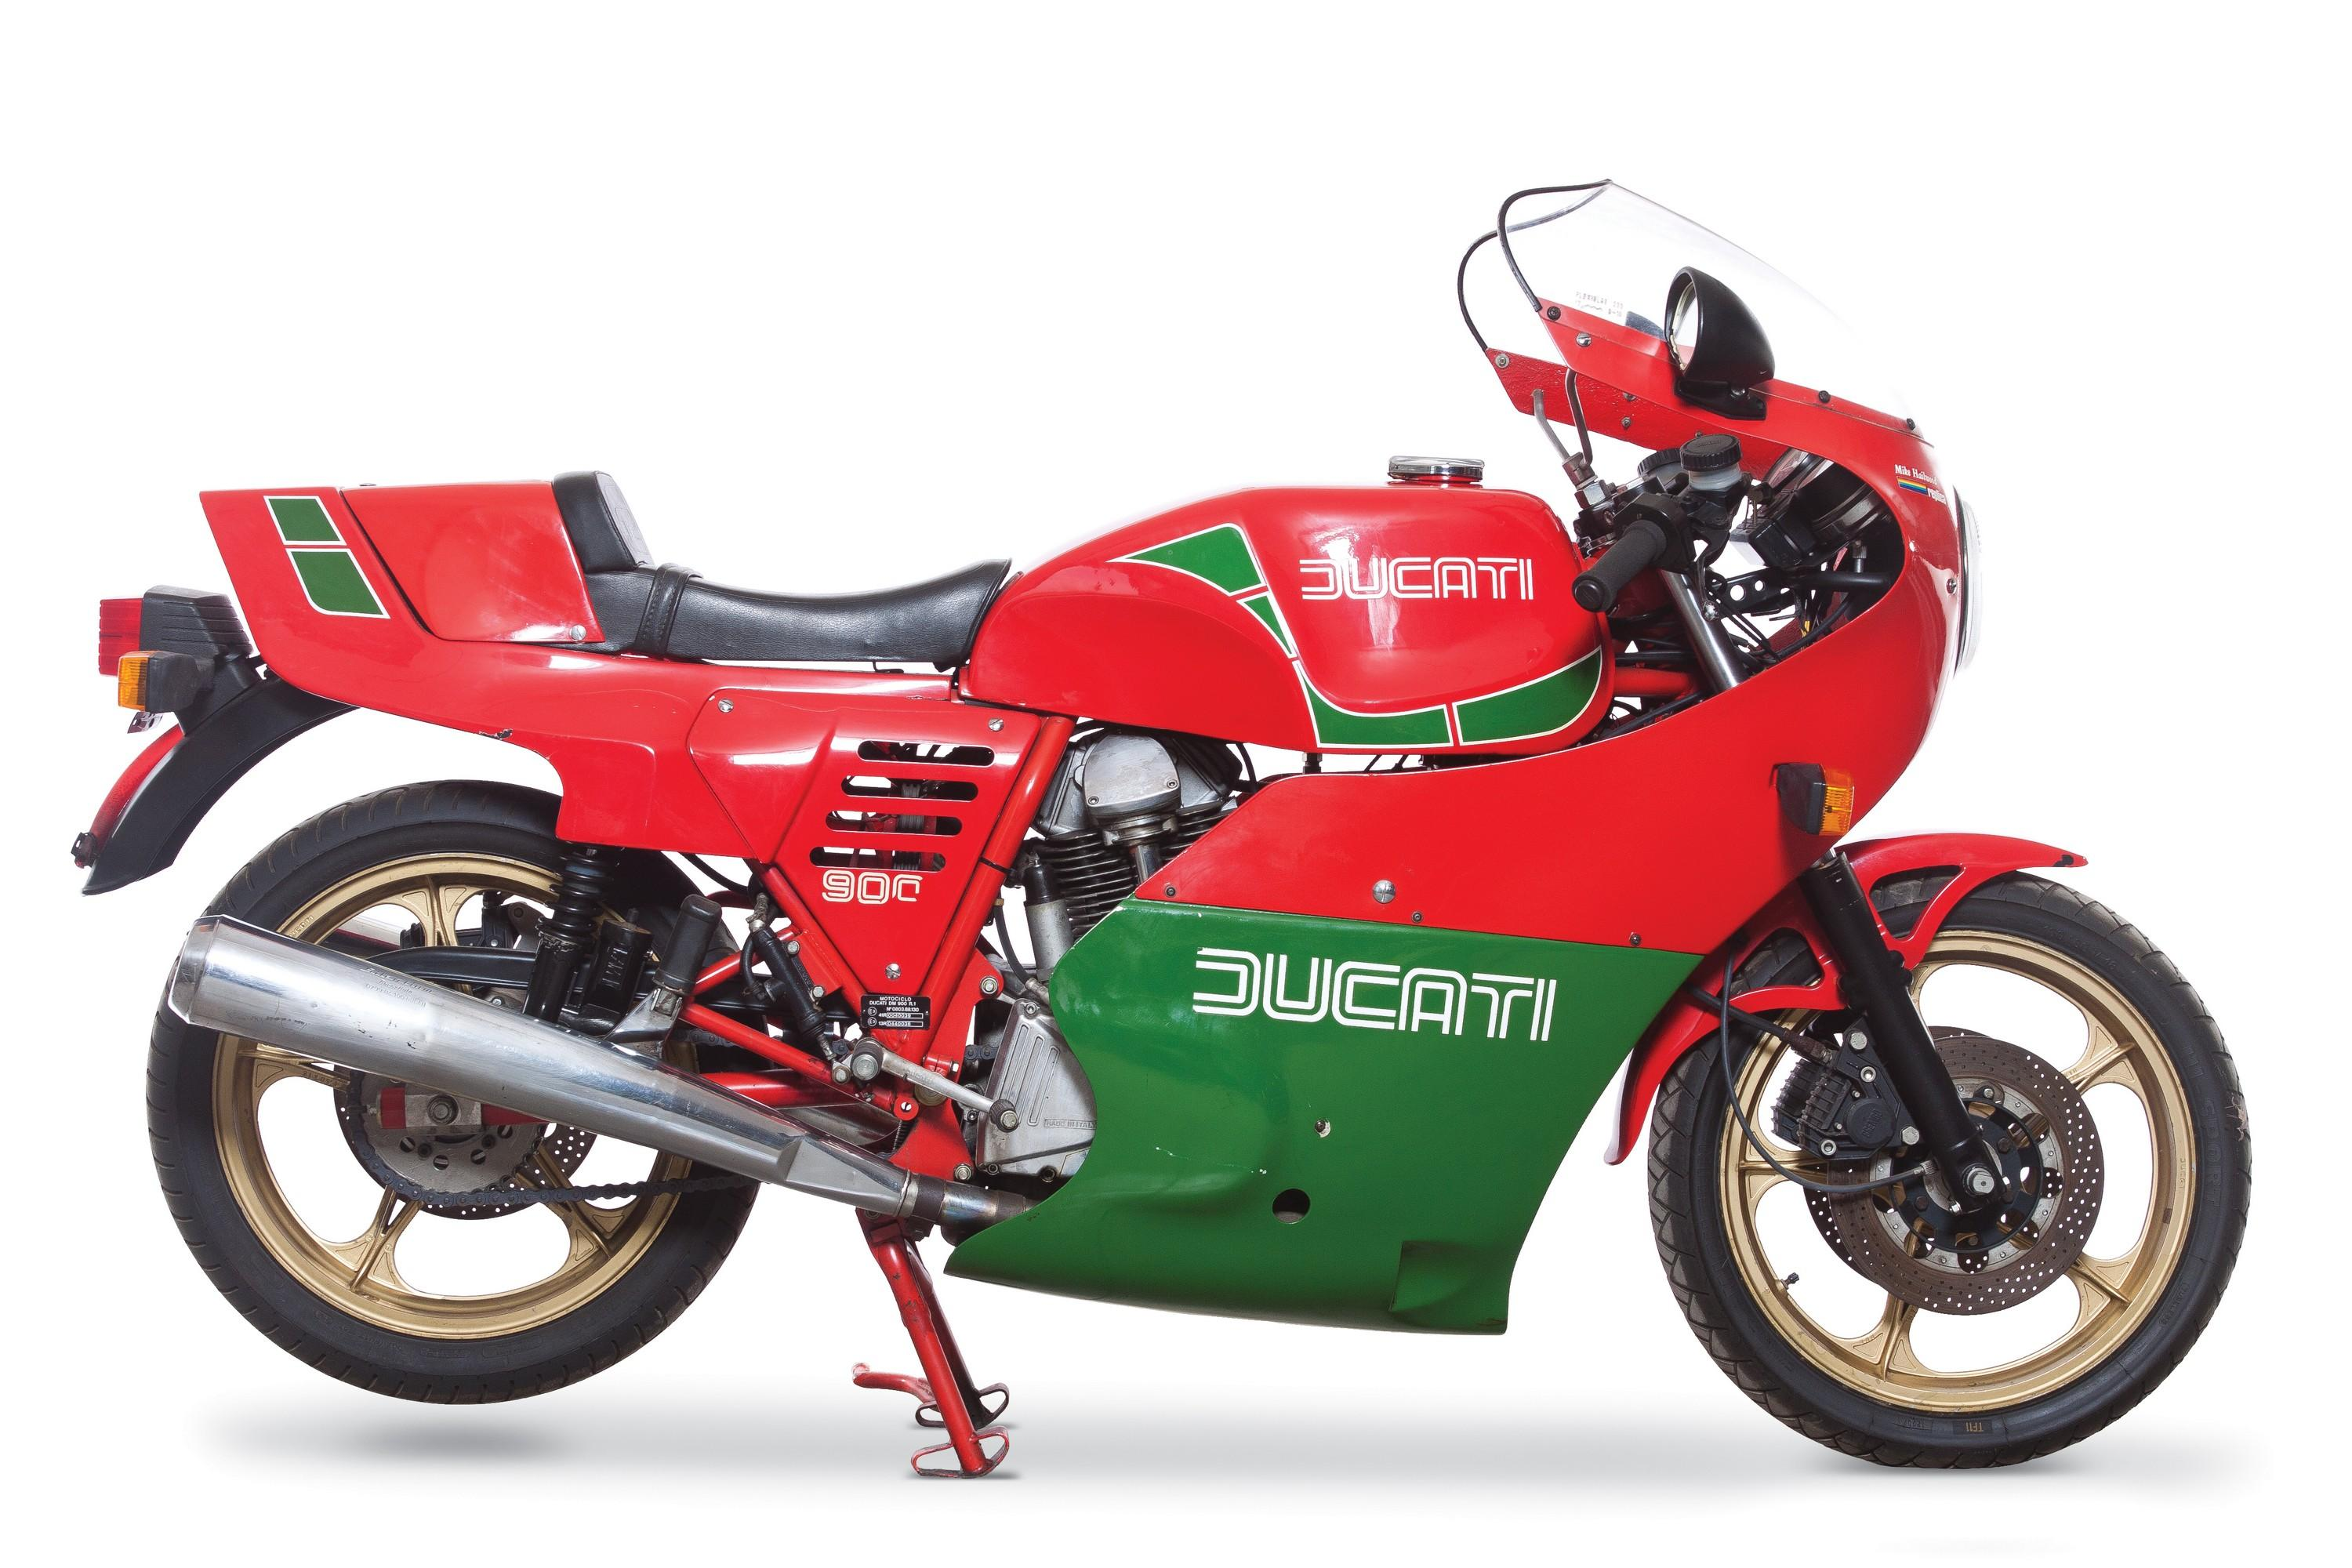 1983 Ducati 900 Mike Hailwood Replica Pictures, Photos, Wallpapers ...